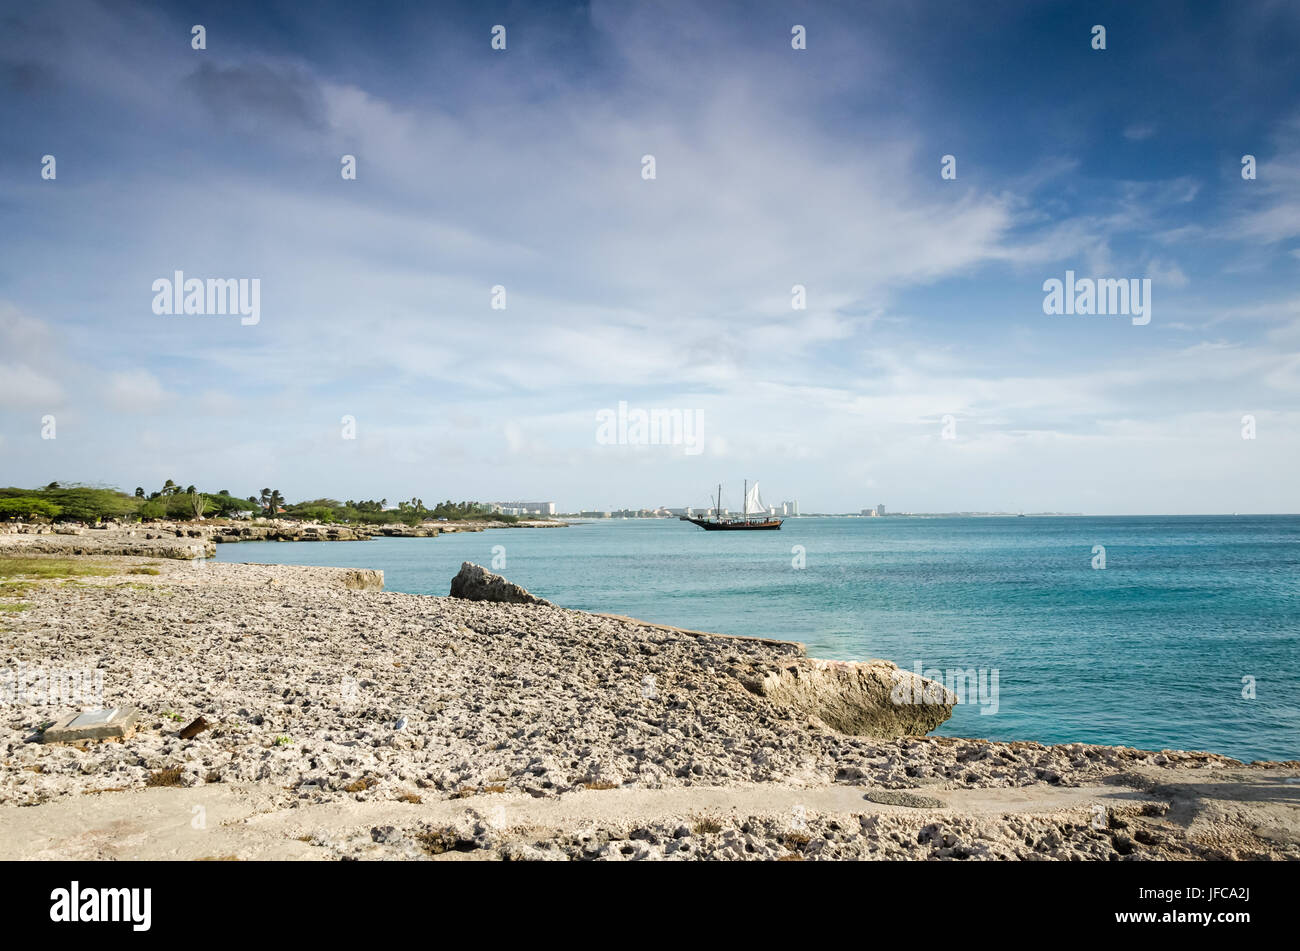 Sailboat anchored as a background in Aruba - Stock Image